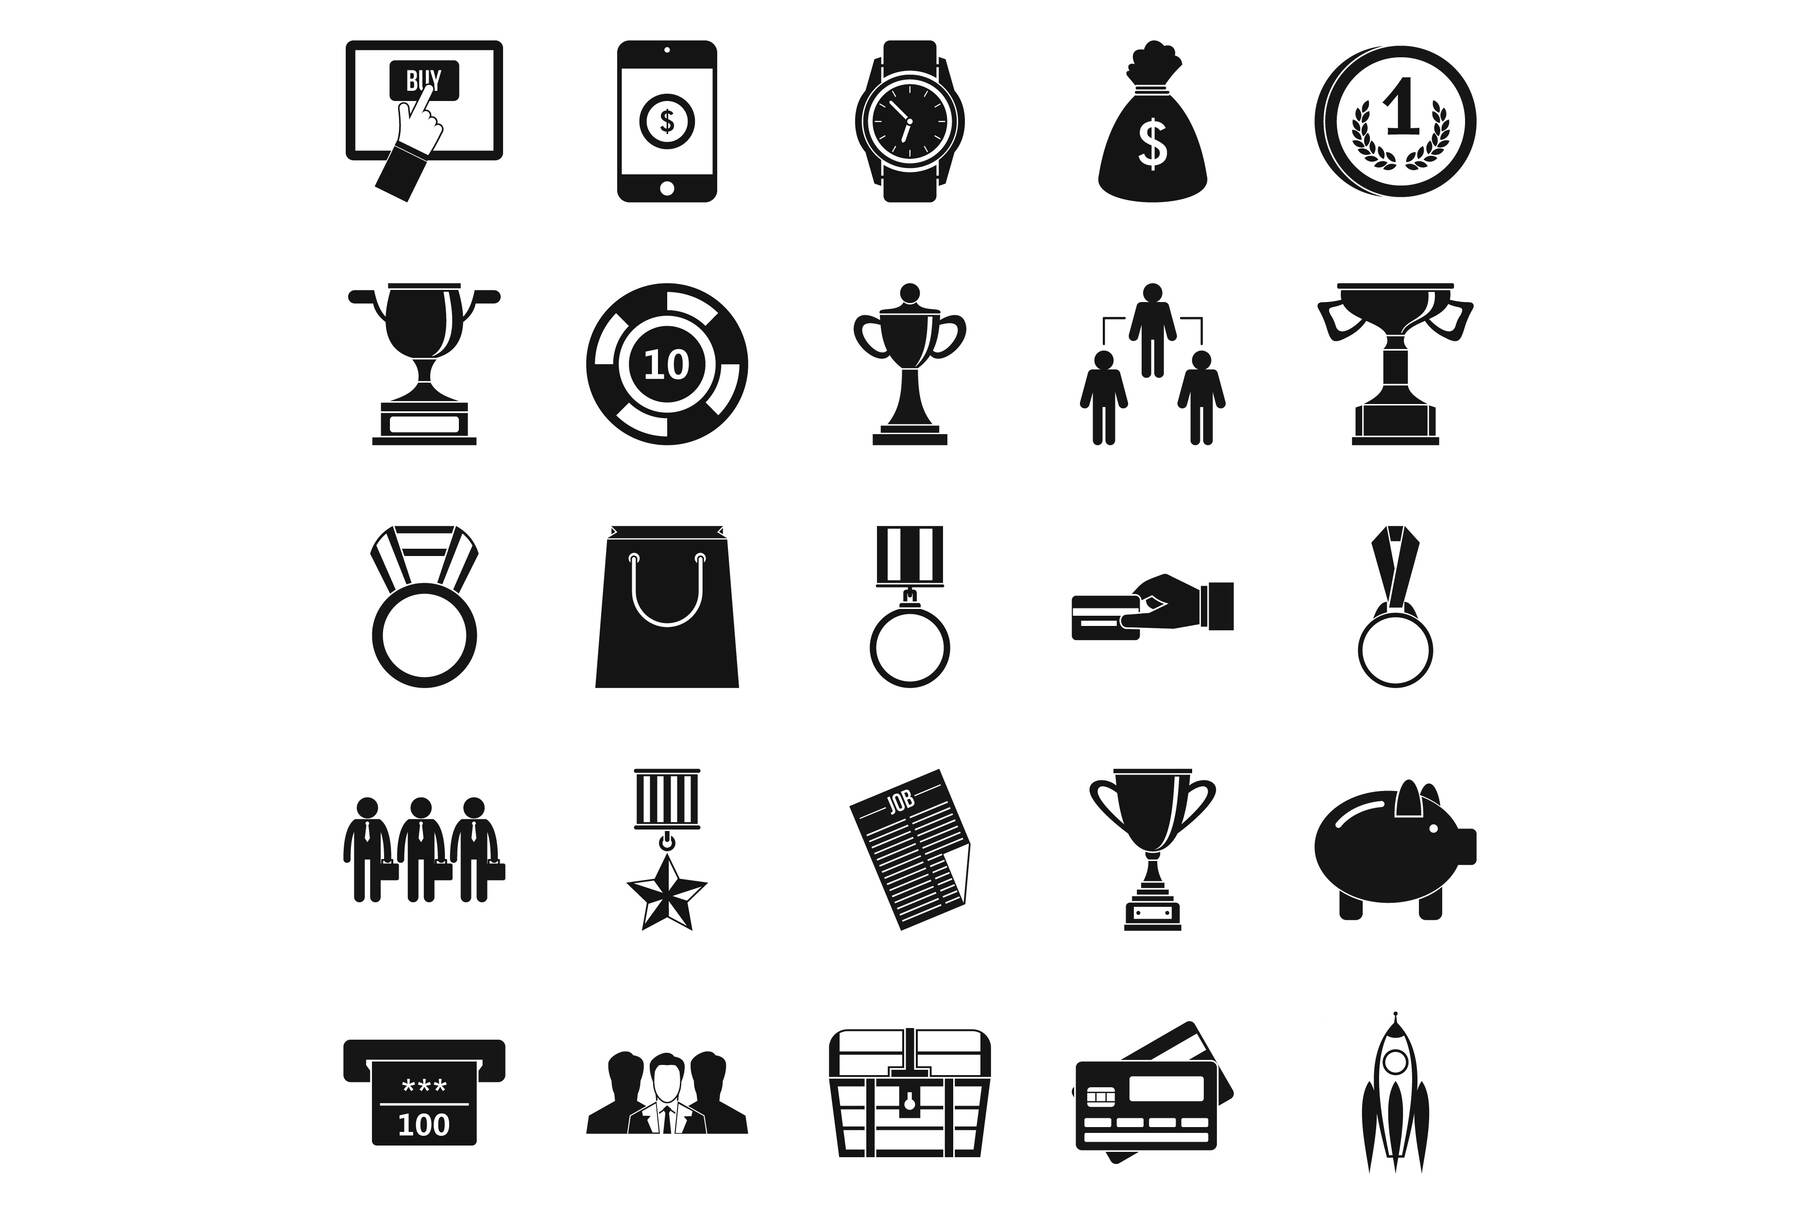 Cash transfer icons set, simple style example image 1